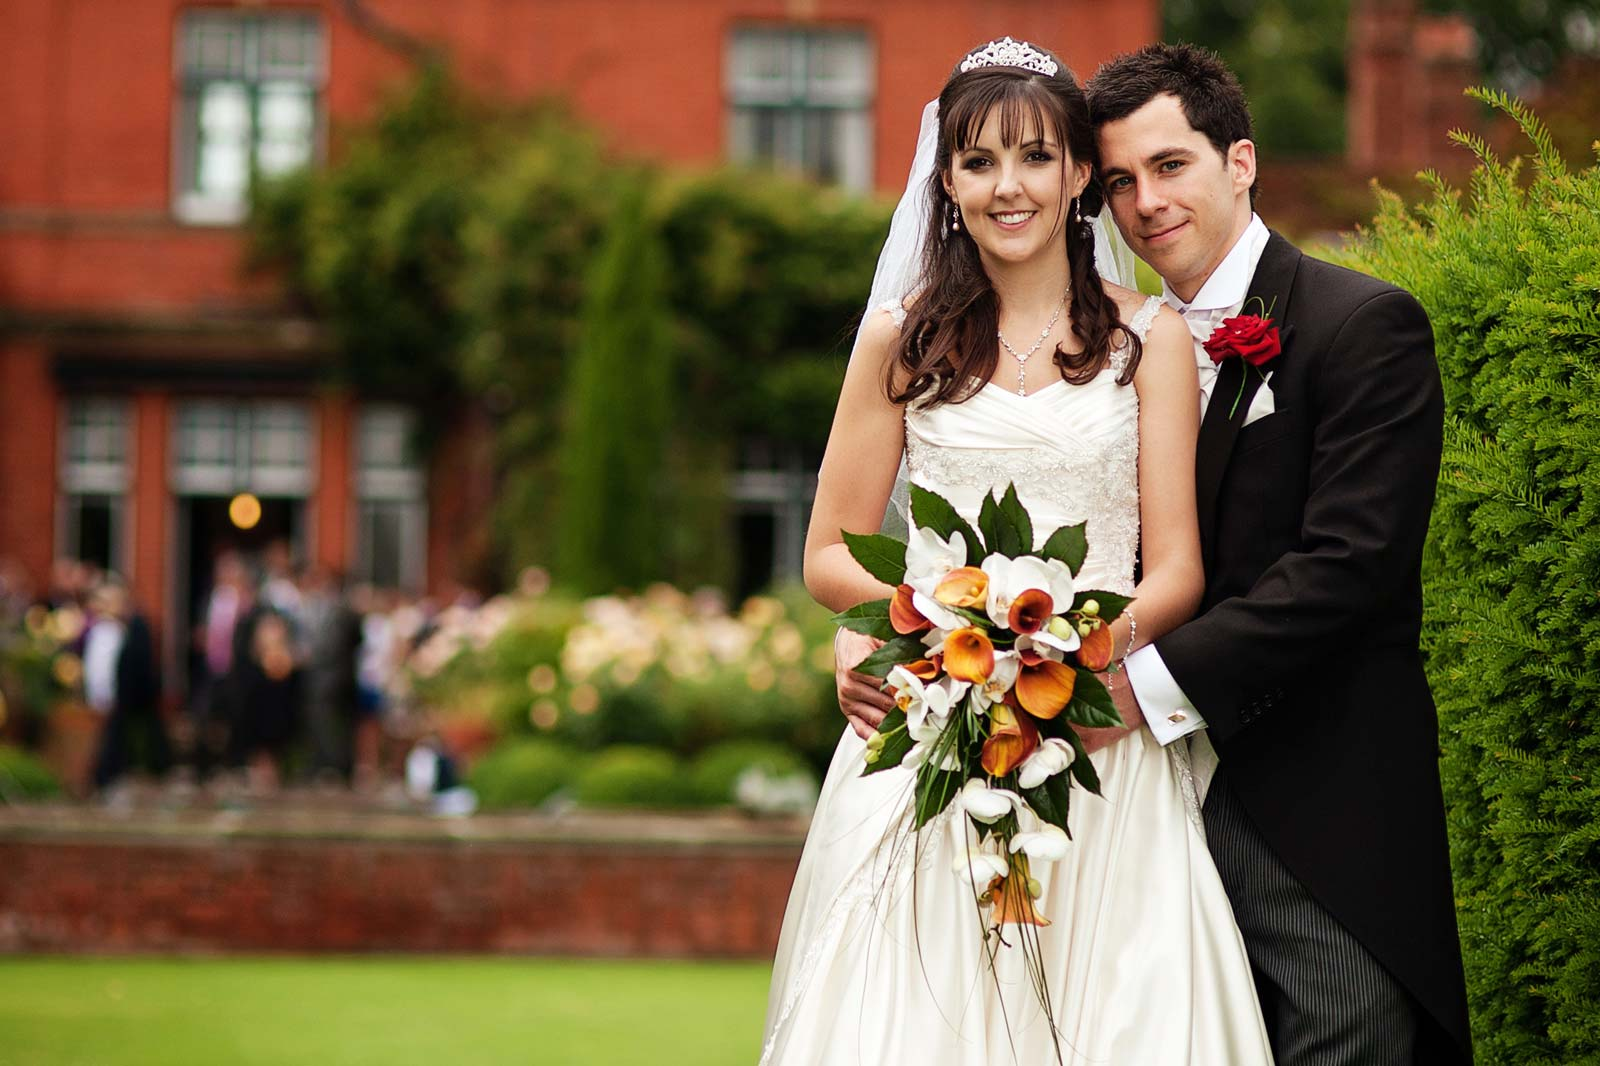 Wedding photo gallery in Cambridge - Suffolk